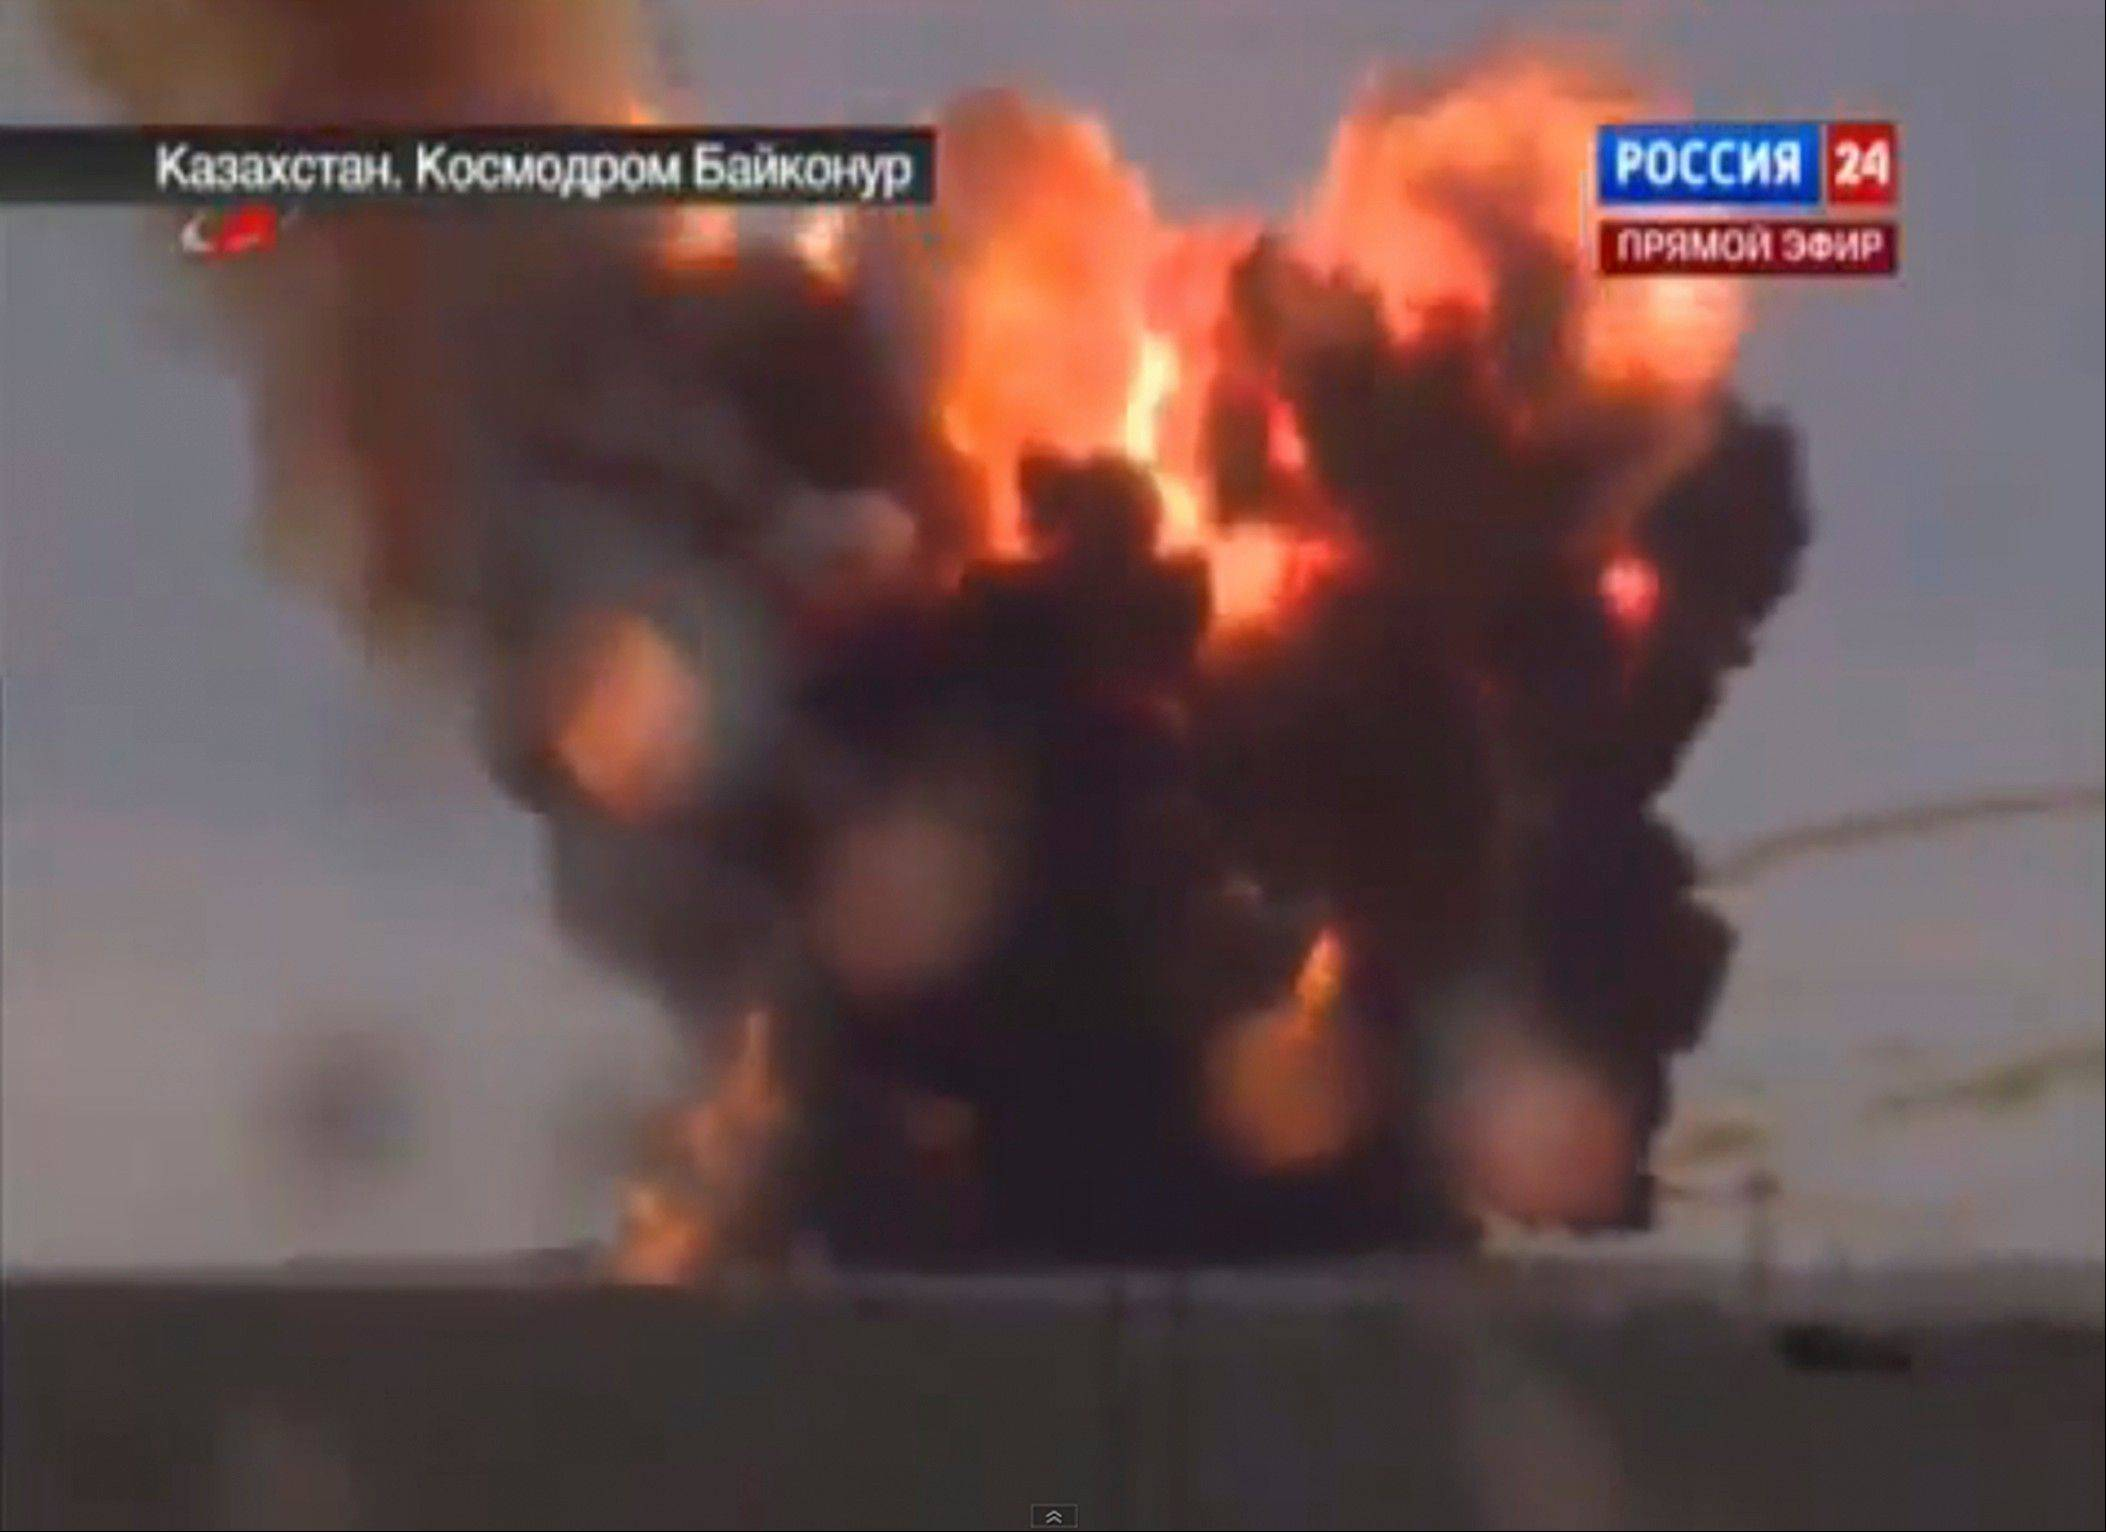 In this frame grab made from TV footage distributed by Russian Vesti 24 channel, Russian booster rocket carrying three satellites crashes at a Russia-leased cosmodrome in Kazakhstan on Tuesday July 2, 2013 shortly after the launch The Proton-M booster unexpectedly shut down the engine 17 seconds into the flight and crashed over a mile away from the Baikonur launchpad, the Russian Space Agency said in a statement.